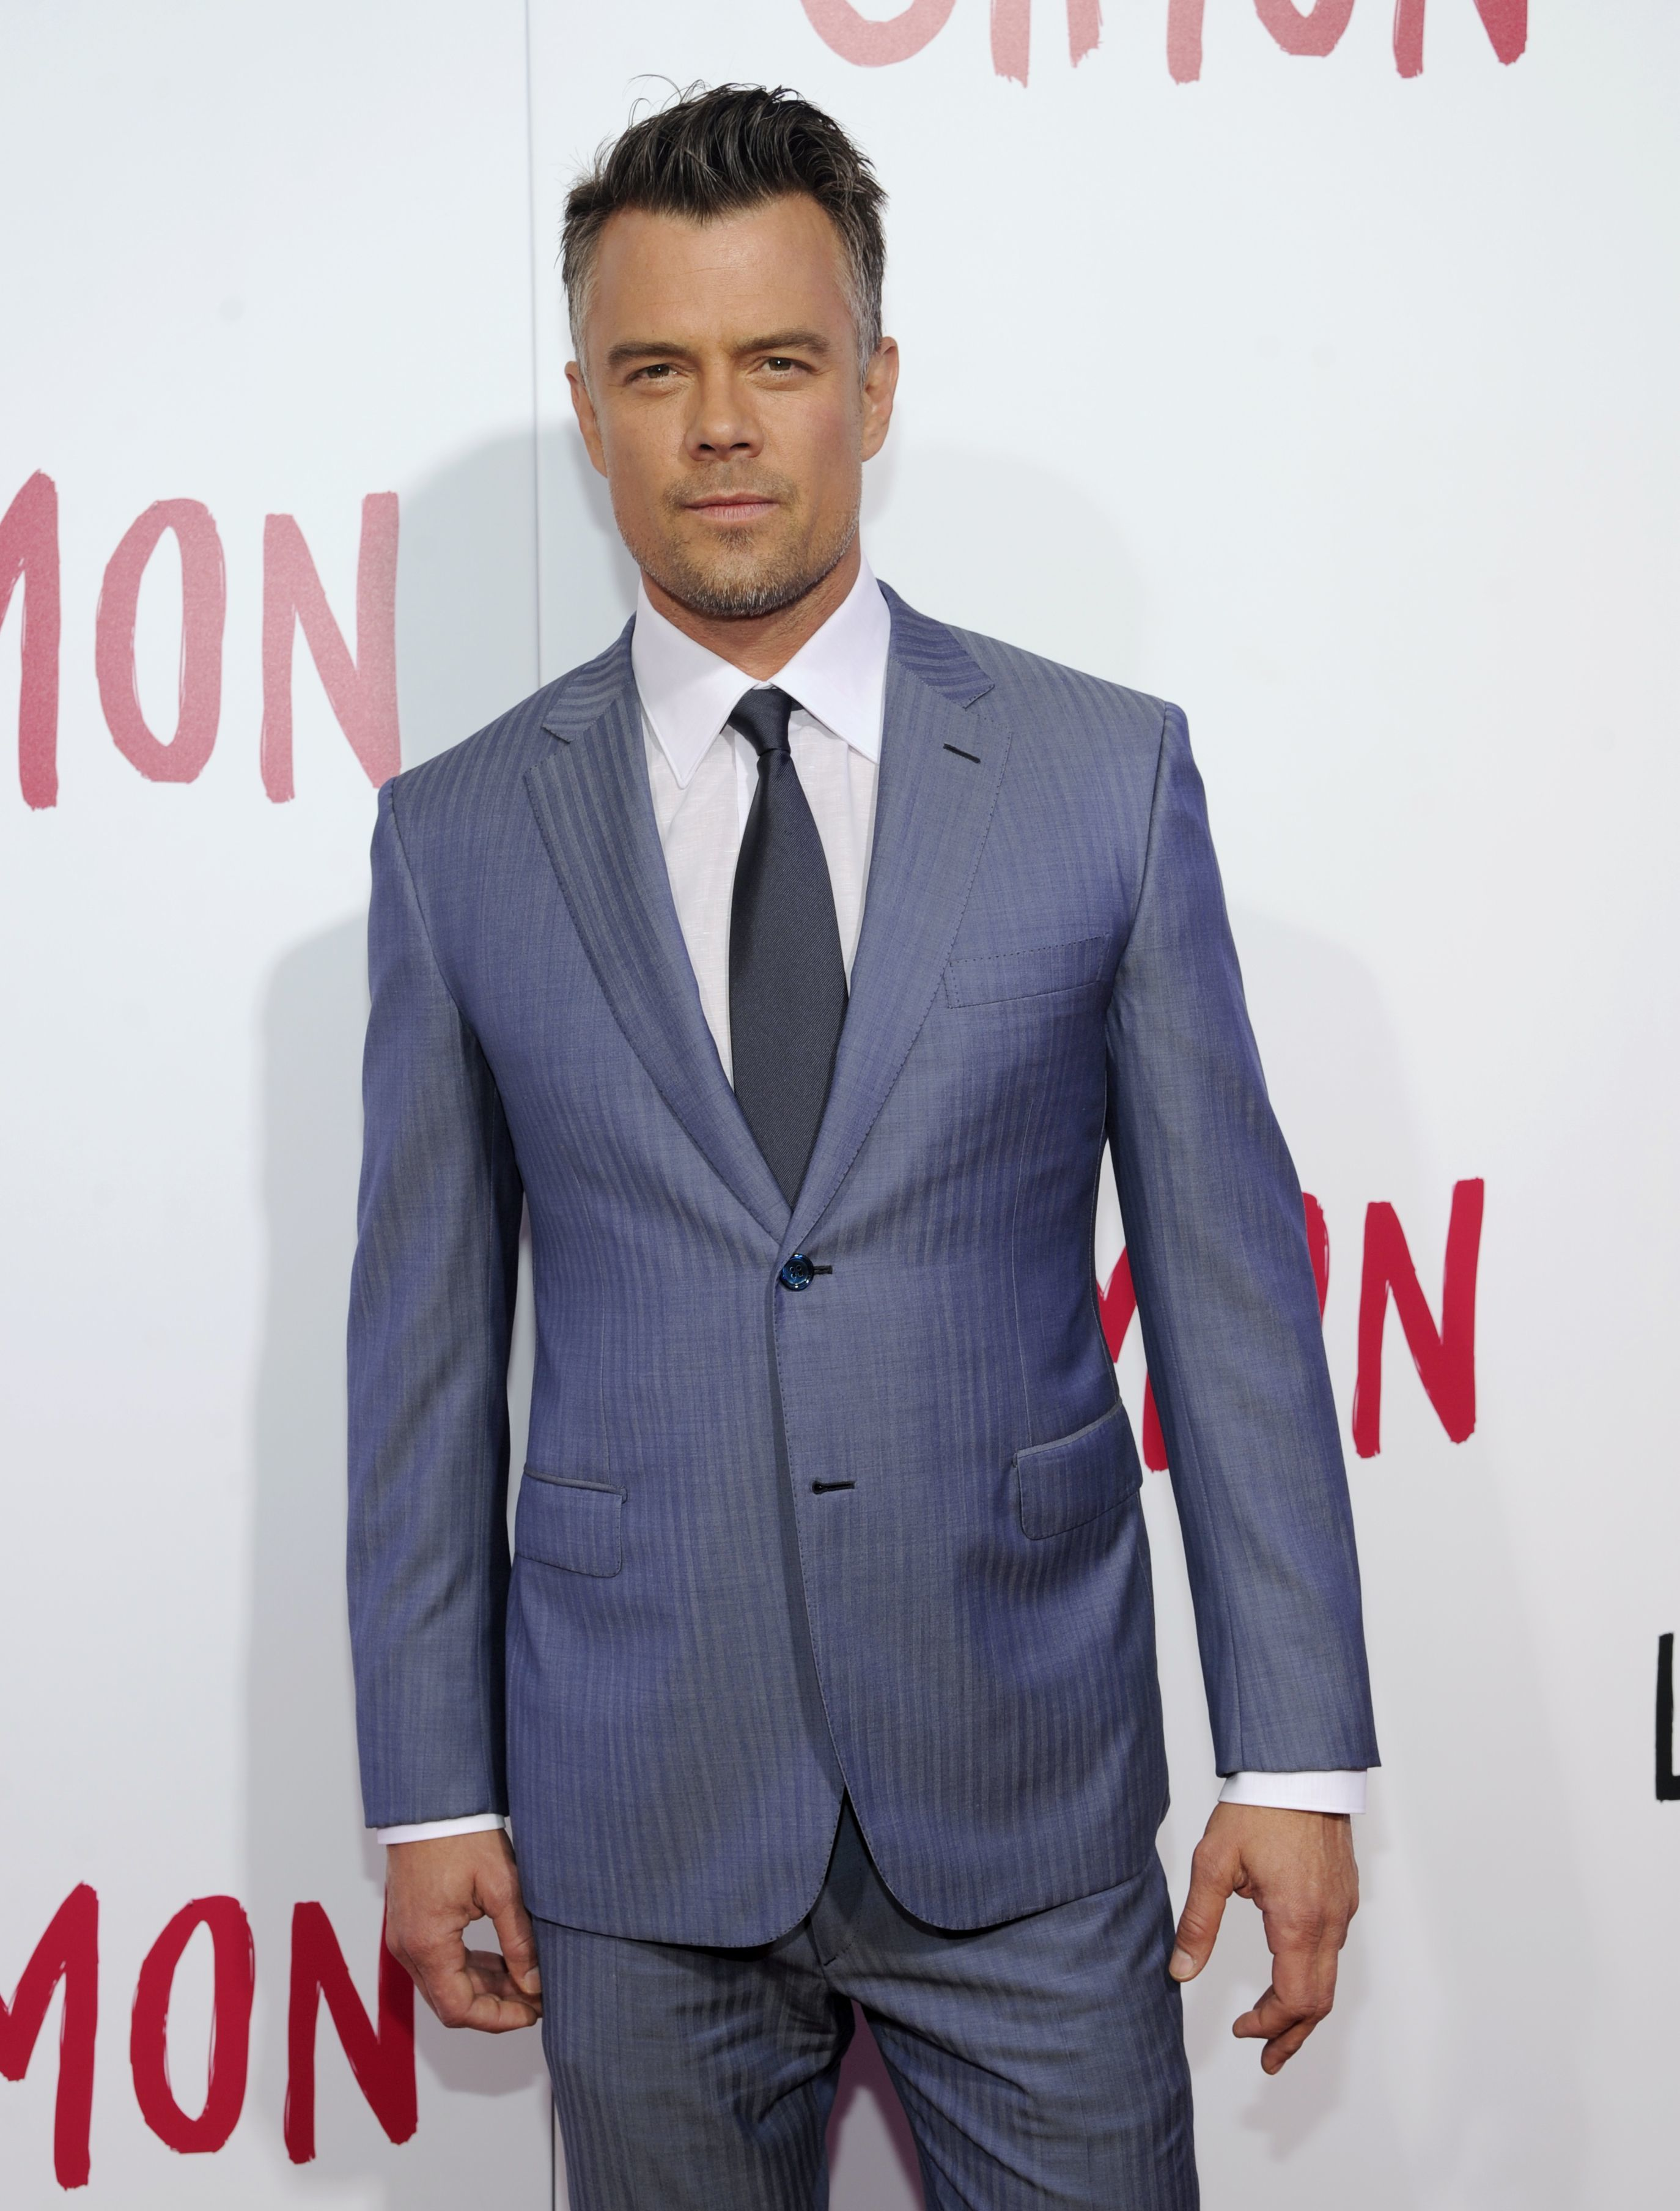 """Josh Duhamel attends the special screening of """"Love, Simon"""" in Los Angeles on March 13, 2018."""